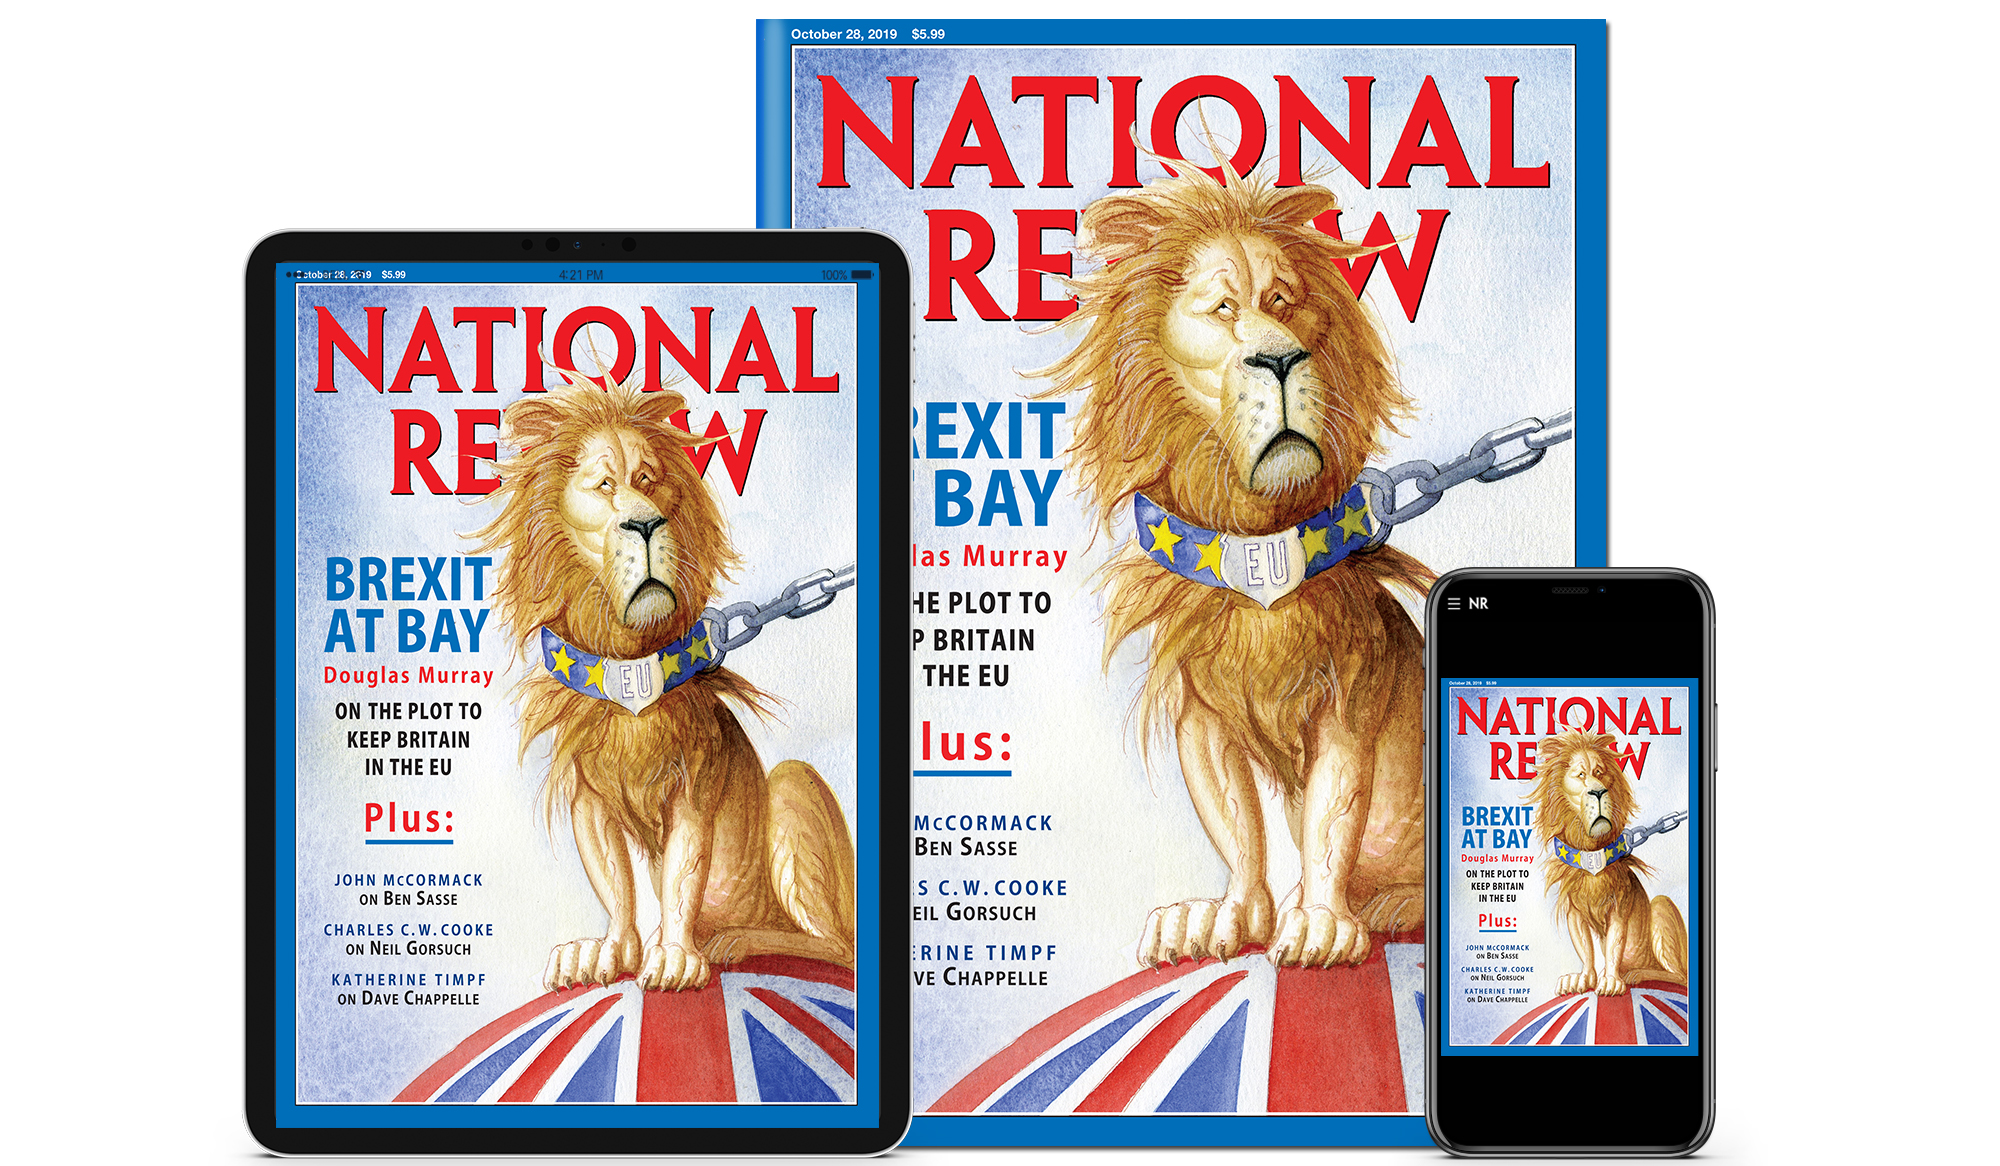 Inside the October 28, 2019, Issue of National Review